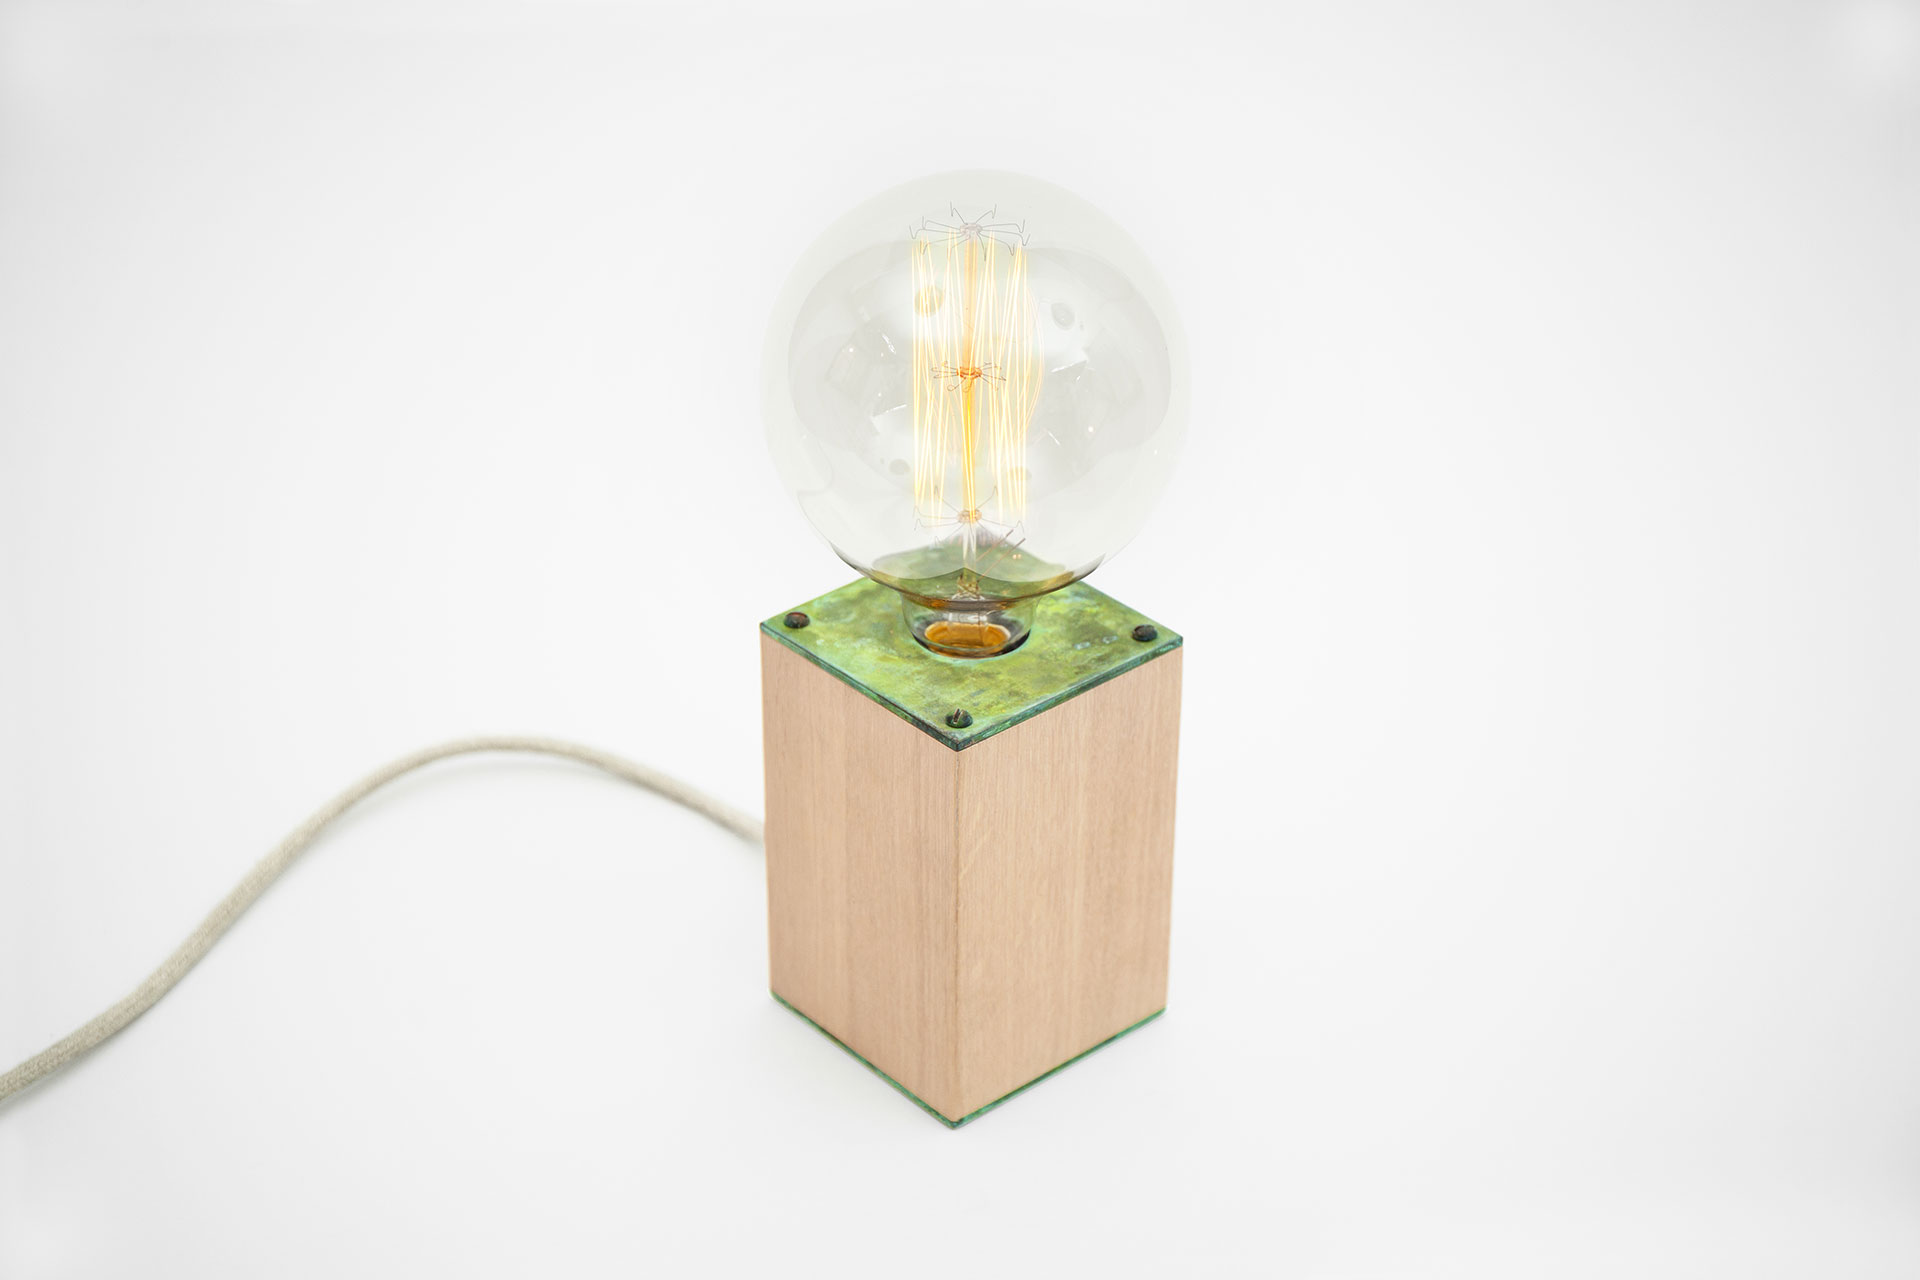 Colorful table lamp in natural oak wood and handmade green patina with magic touch dimmer and large retro bulb